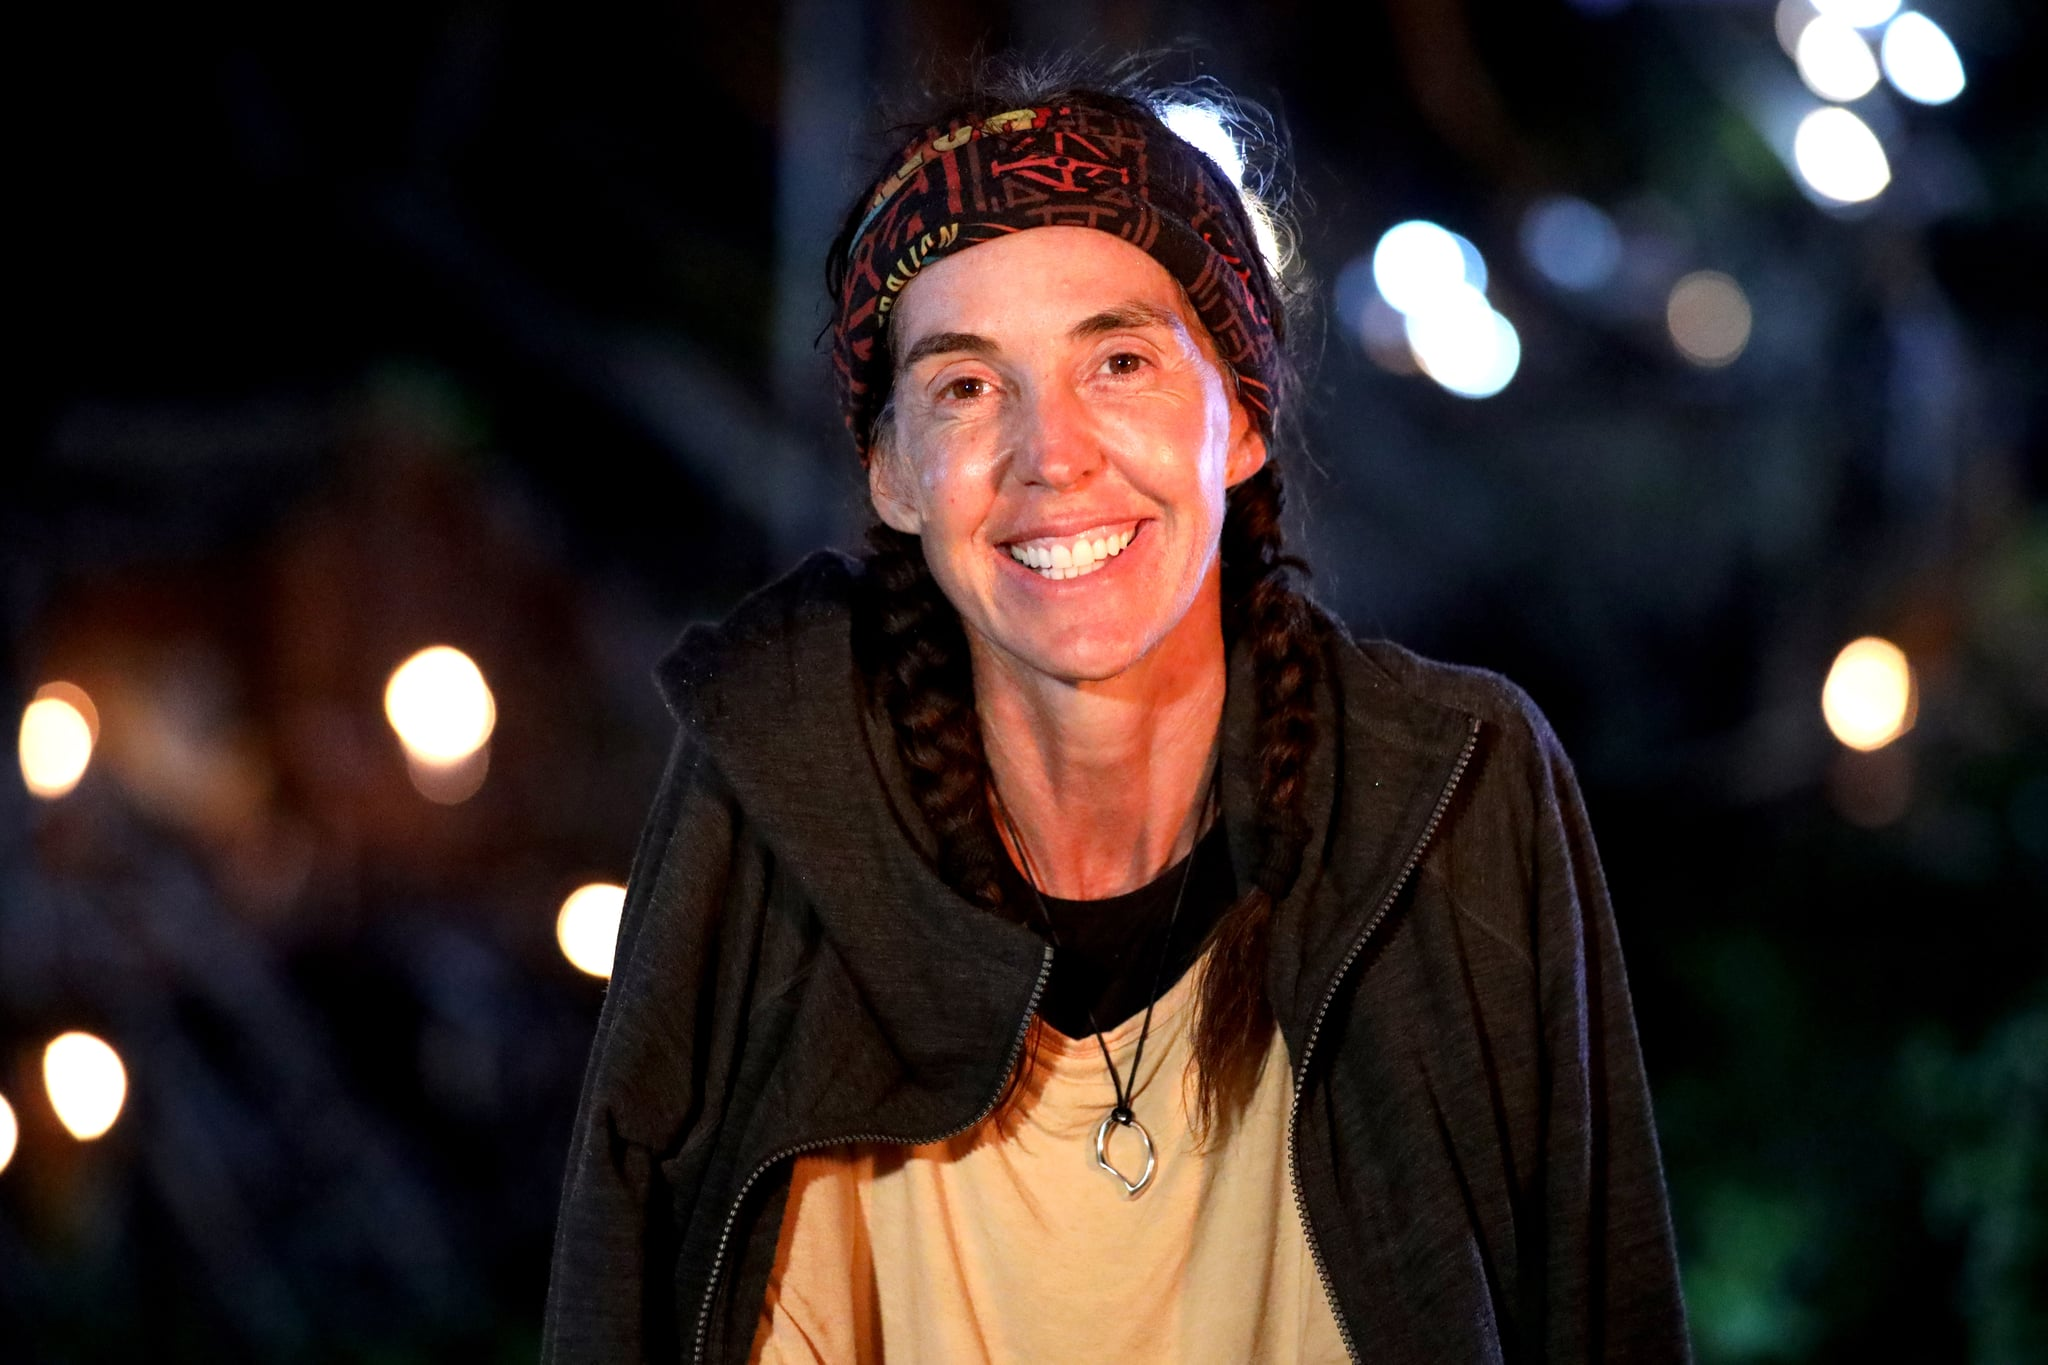 PHOTOGRAPH BY NIGEL WRIGHT. 2019AUSTRALIAN SURVIVOR...S4CHANNEL TEN.THIS PICTURE SHOWS...AS SERIES 4....EPISODE 21.